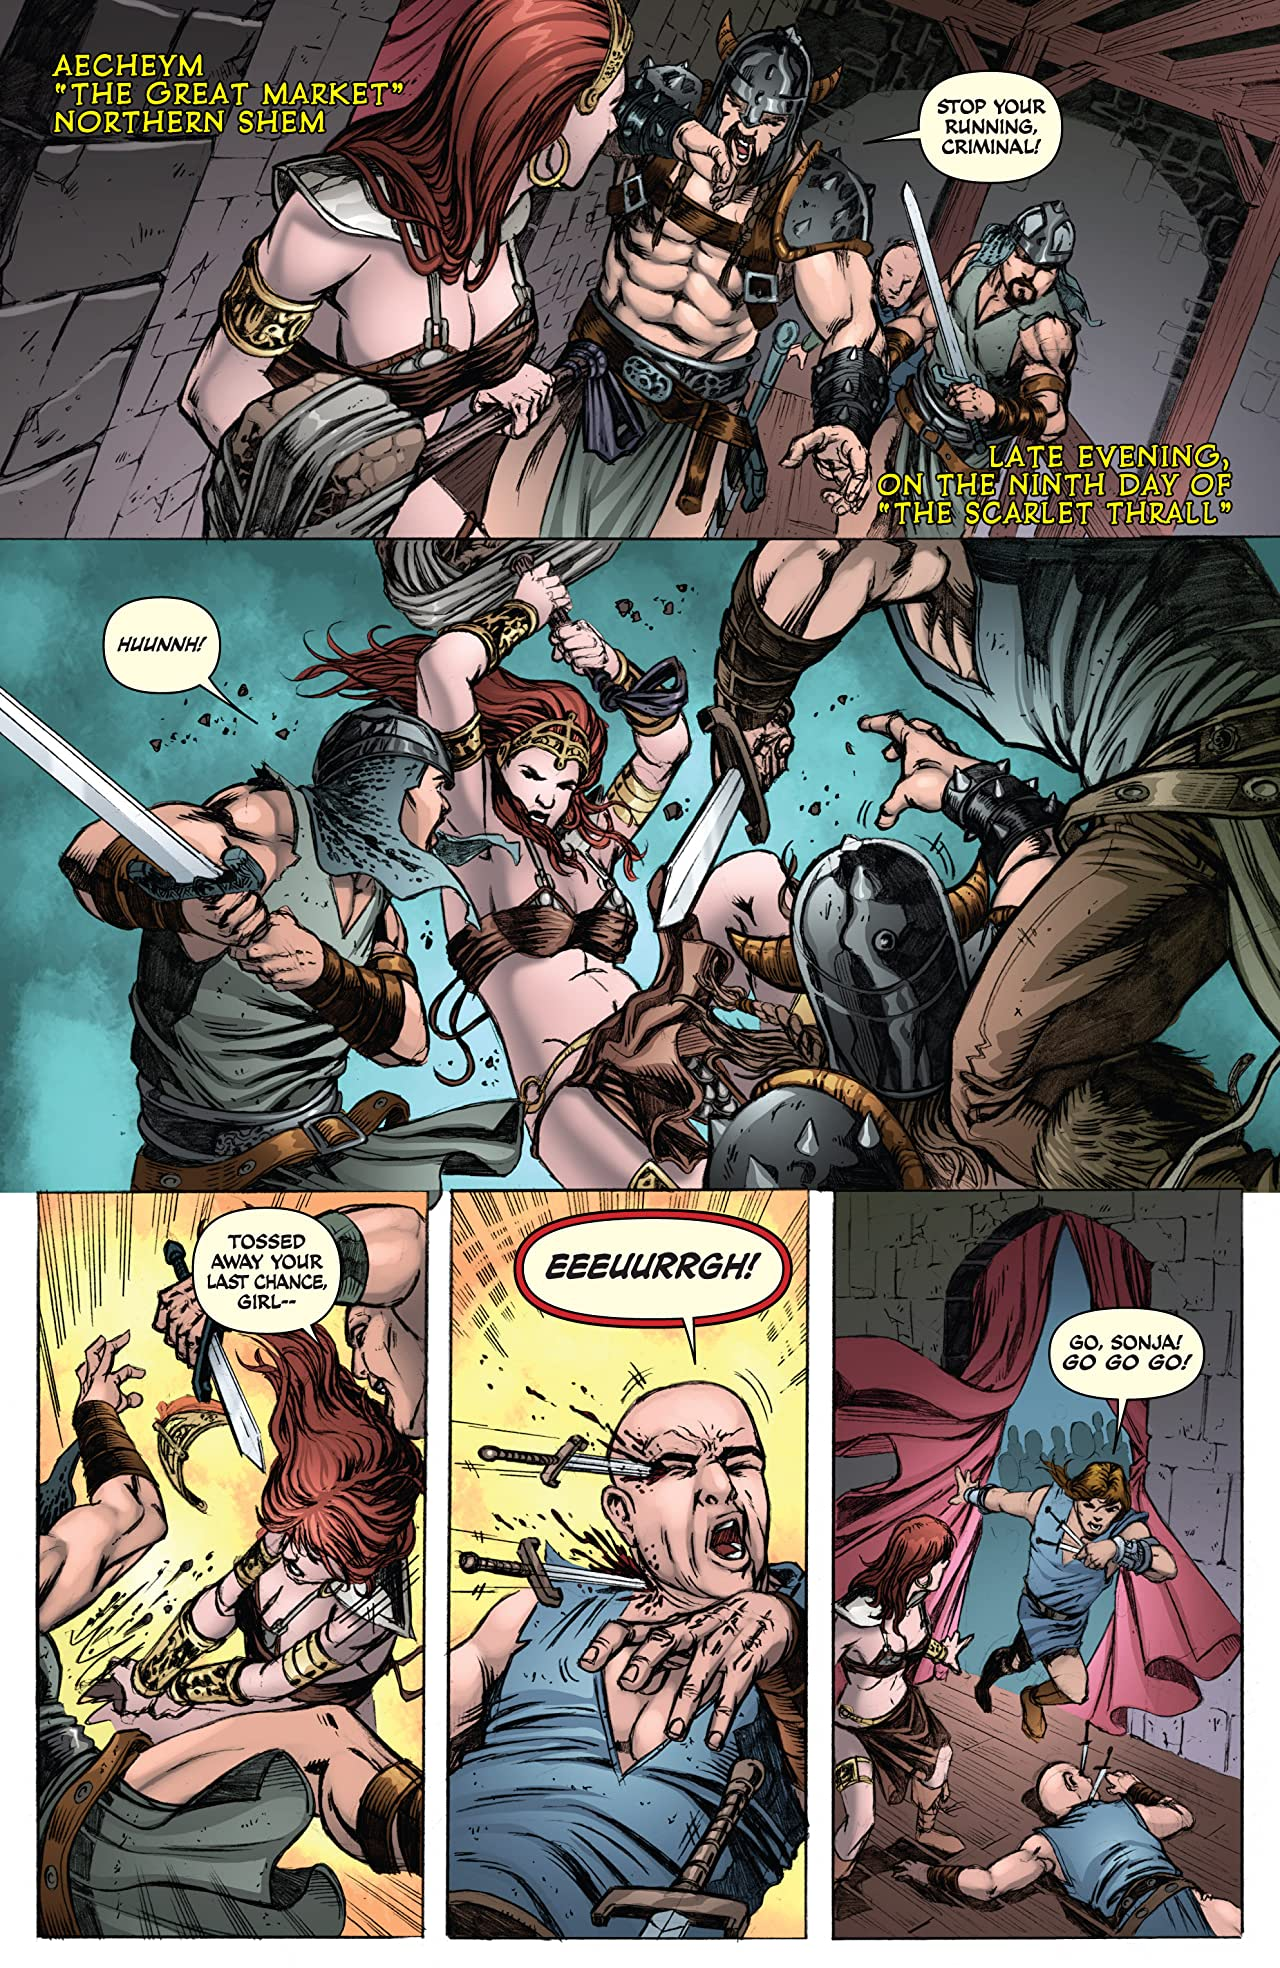 Red Sonja: She-Devil With A Sword #78